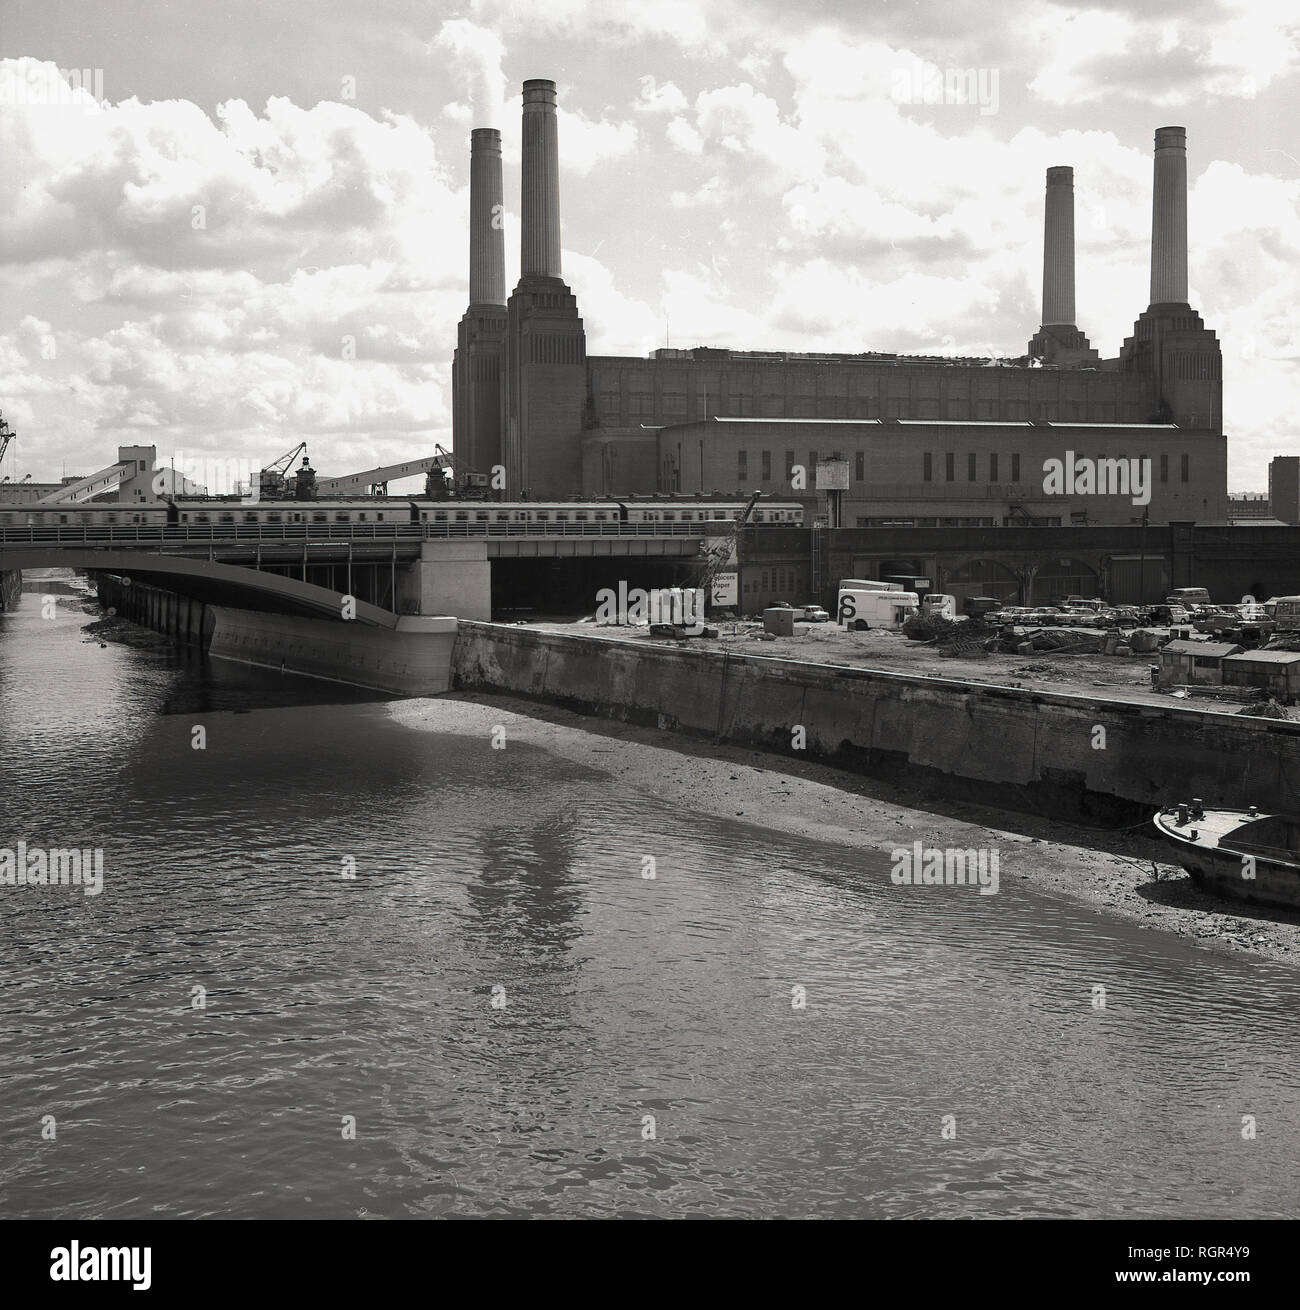 1950s, historical, view of Battersea Power Station at Nine Elms, Battersea on the South bank of the River Thames, London, England, The coal-fired power station was in fact two power stations in a single building, Battersea A was constructed in the 1930s and Battersea B between 1953-1955, with both being built to a nearly identical design, providing the iconic four-chimney structure seen in the picture. Created by the famous architect, Sir Giles Gilbert Scott, construction started in 1929 and it became one of the largest brick buildings in the world. It was finally decommissioned in 1983. - Stock Image